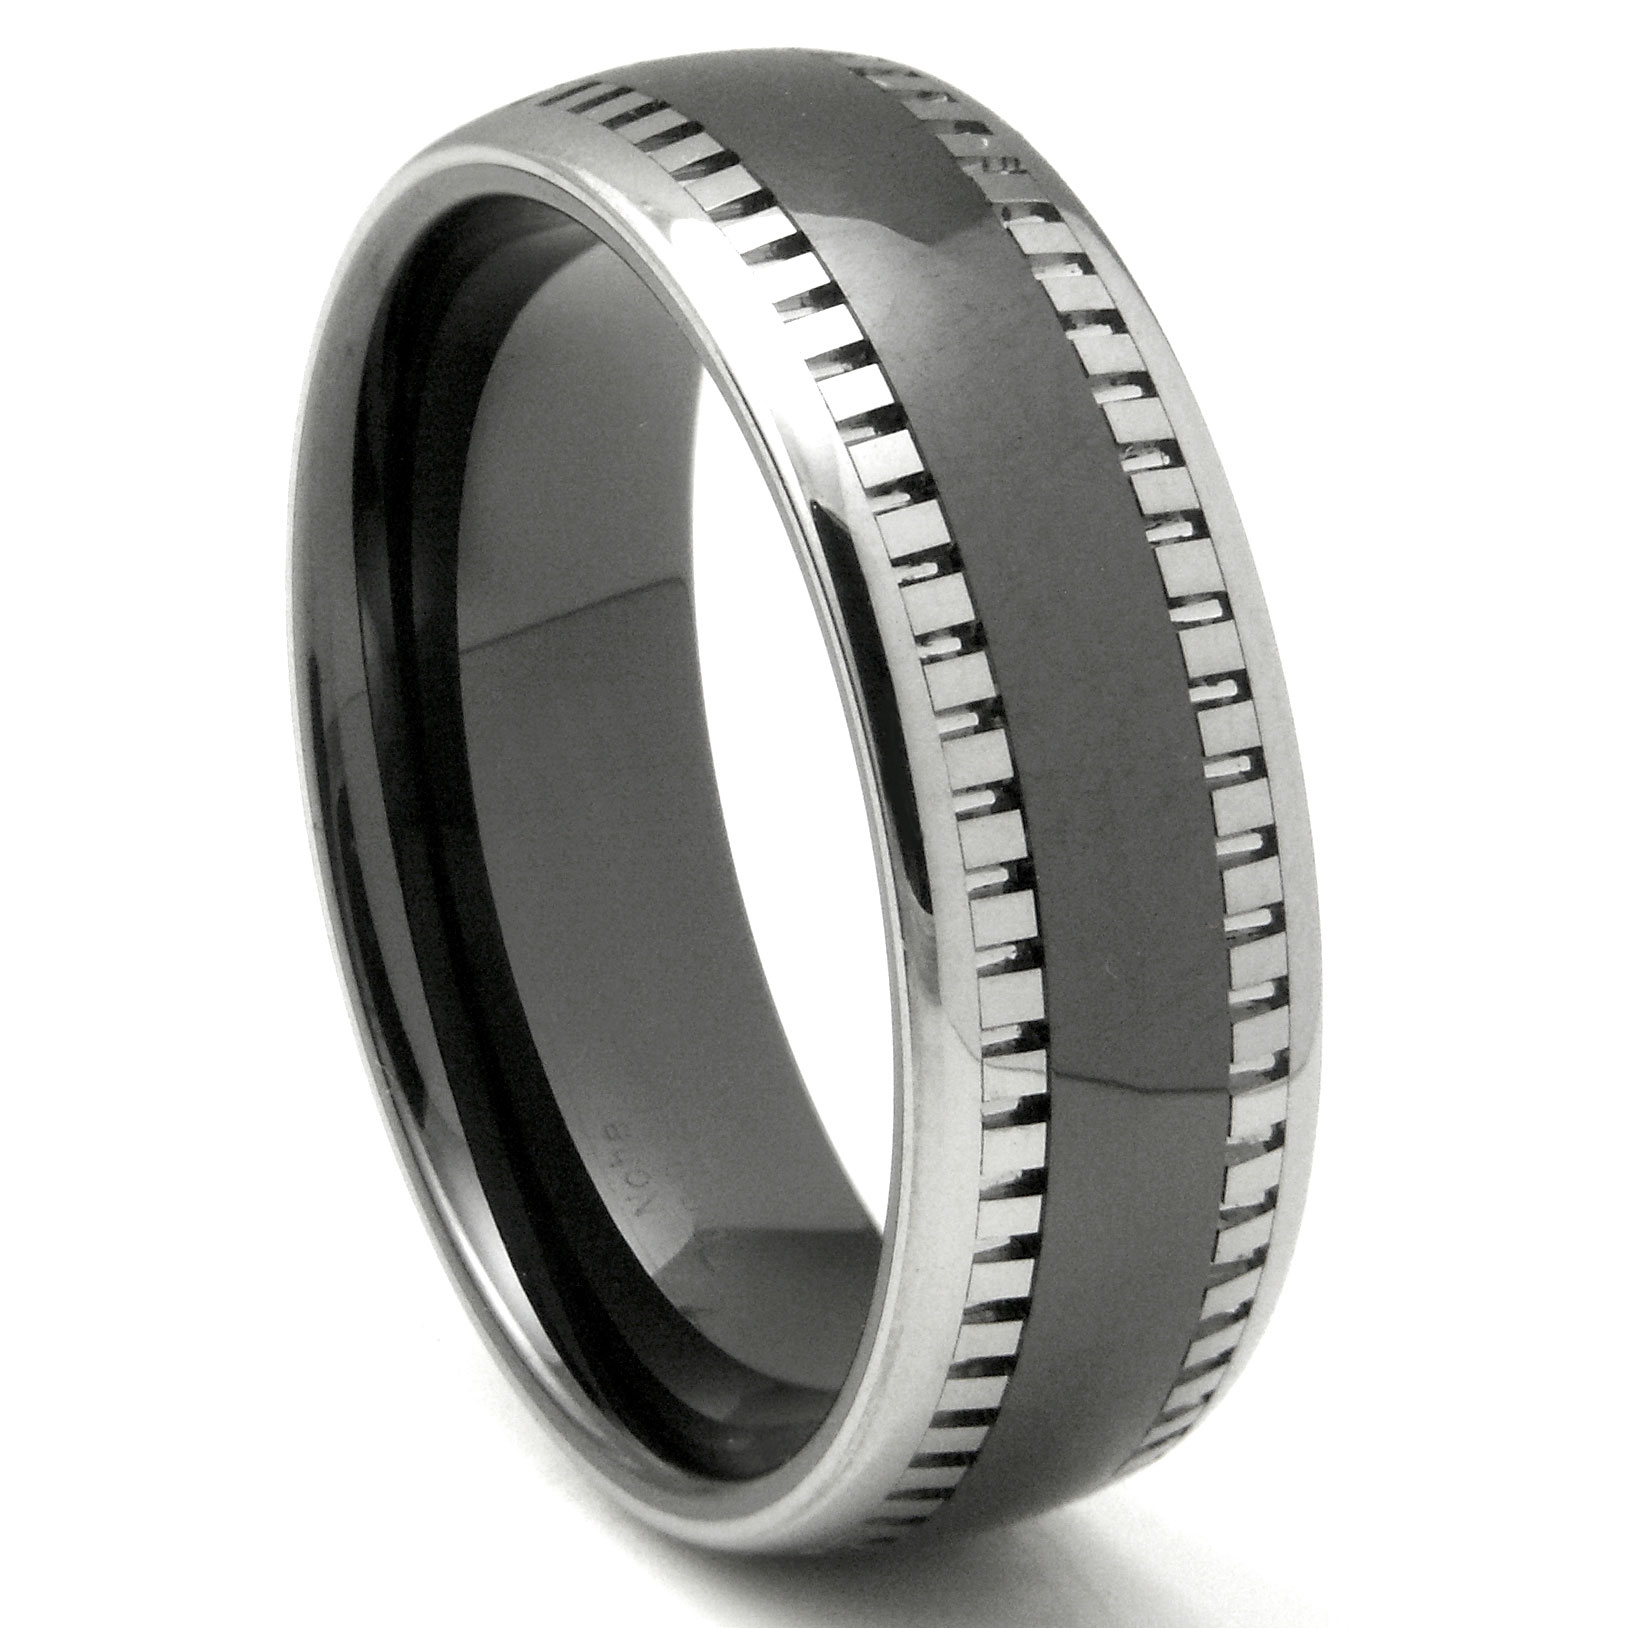 paterson band wedding inlaid product p black carbon fiber carbide rings tungsten sparks